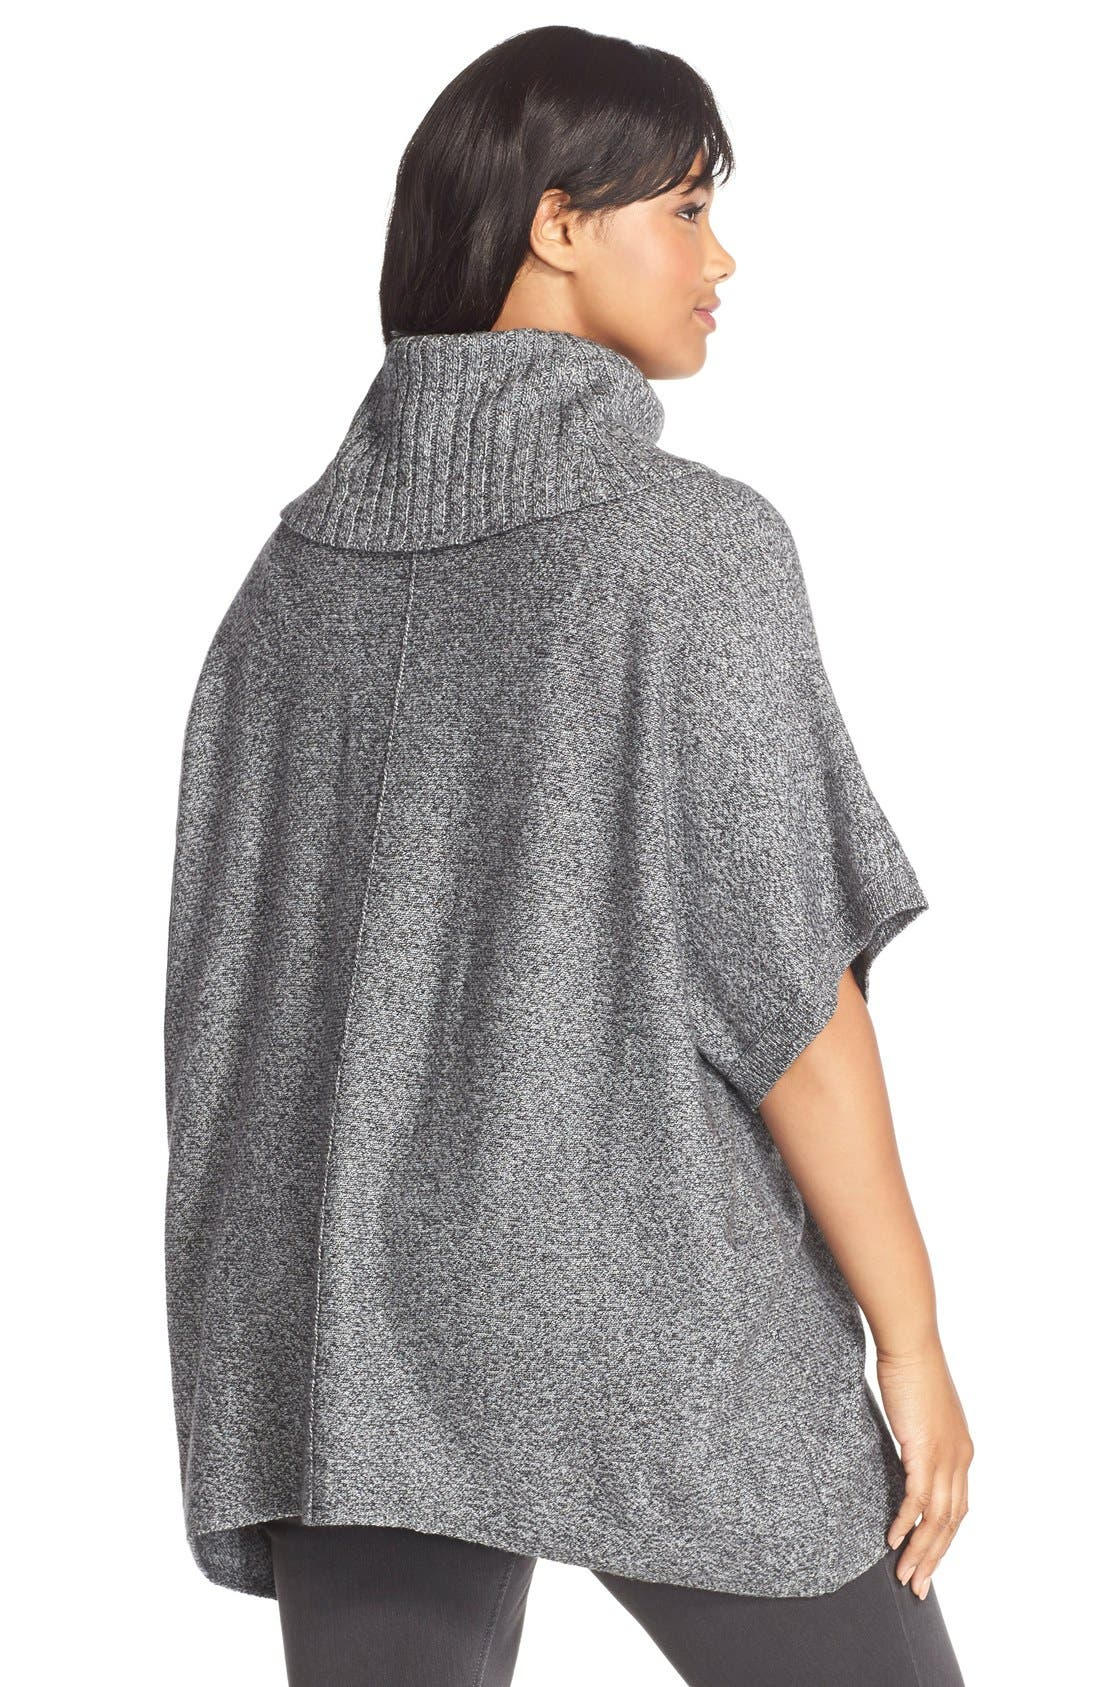 Cowl Neck Pullover,                             Alternate thumbnail 2, color,                             Grey Ivory Tweed Pattern